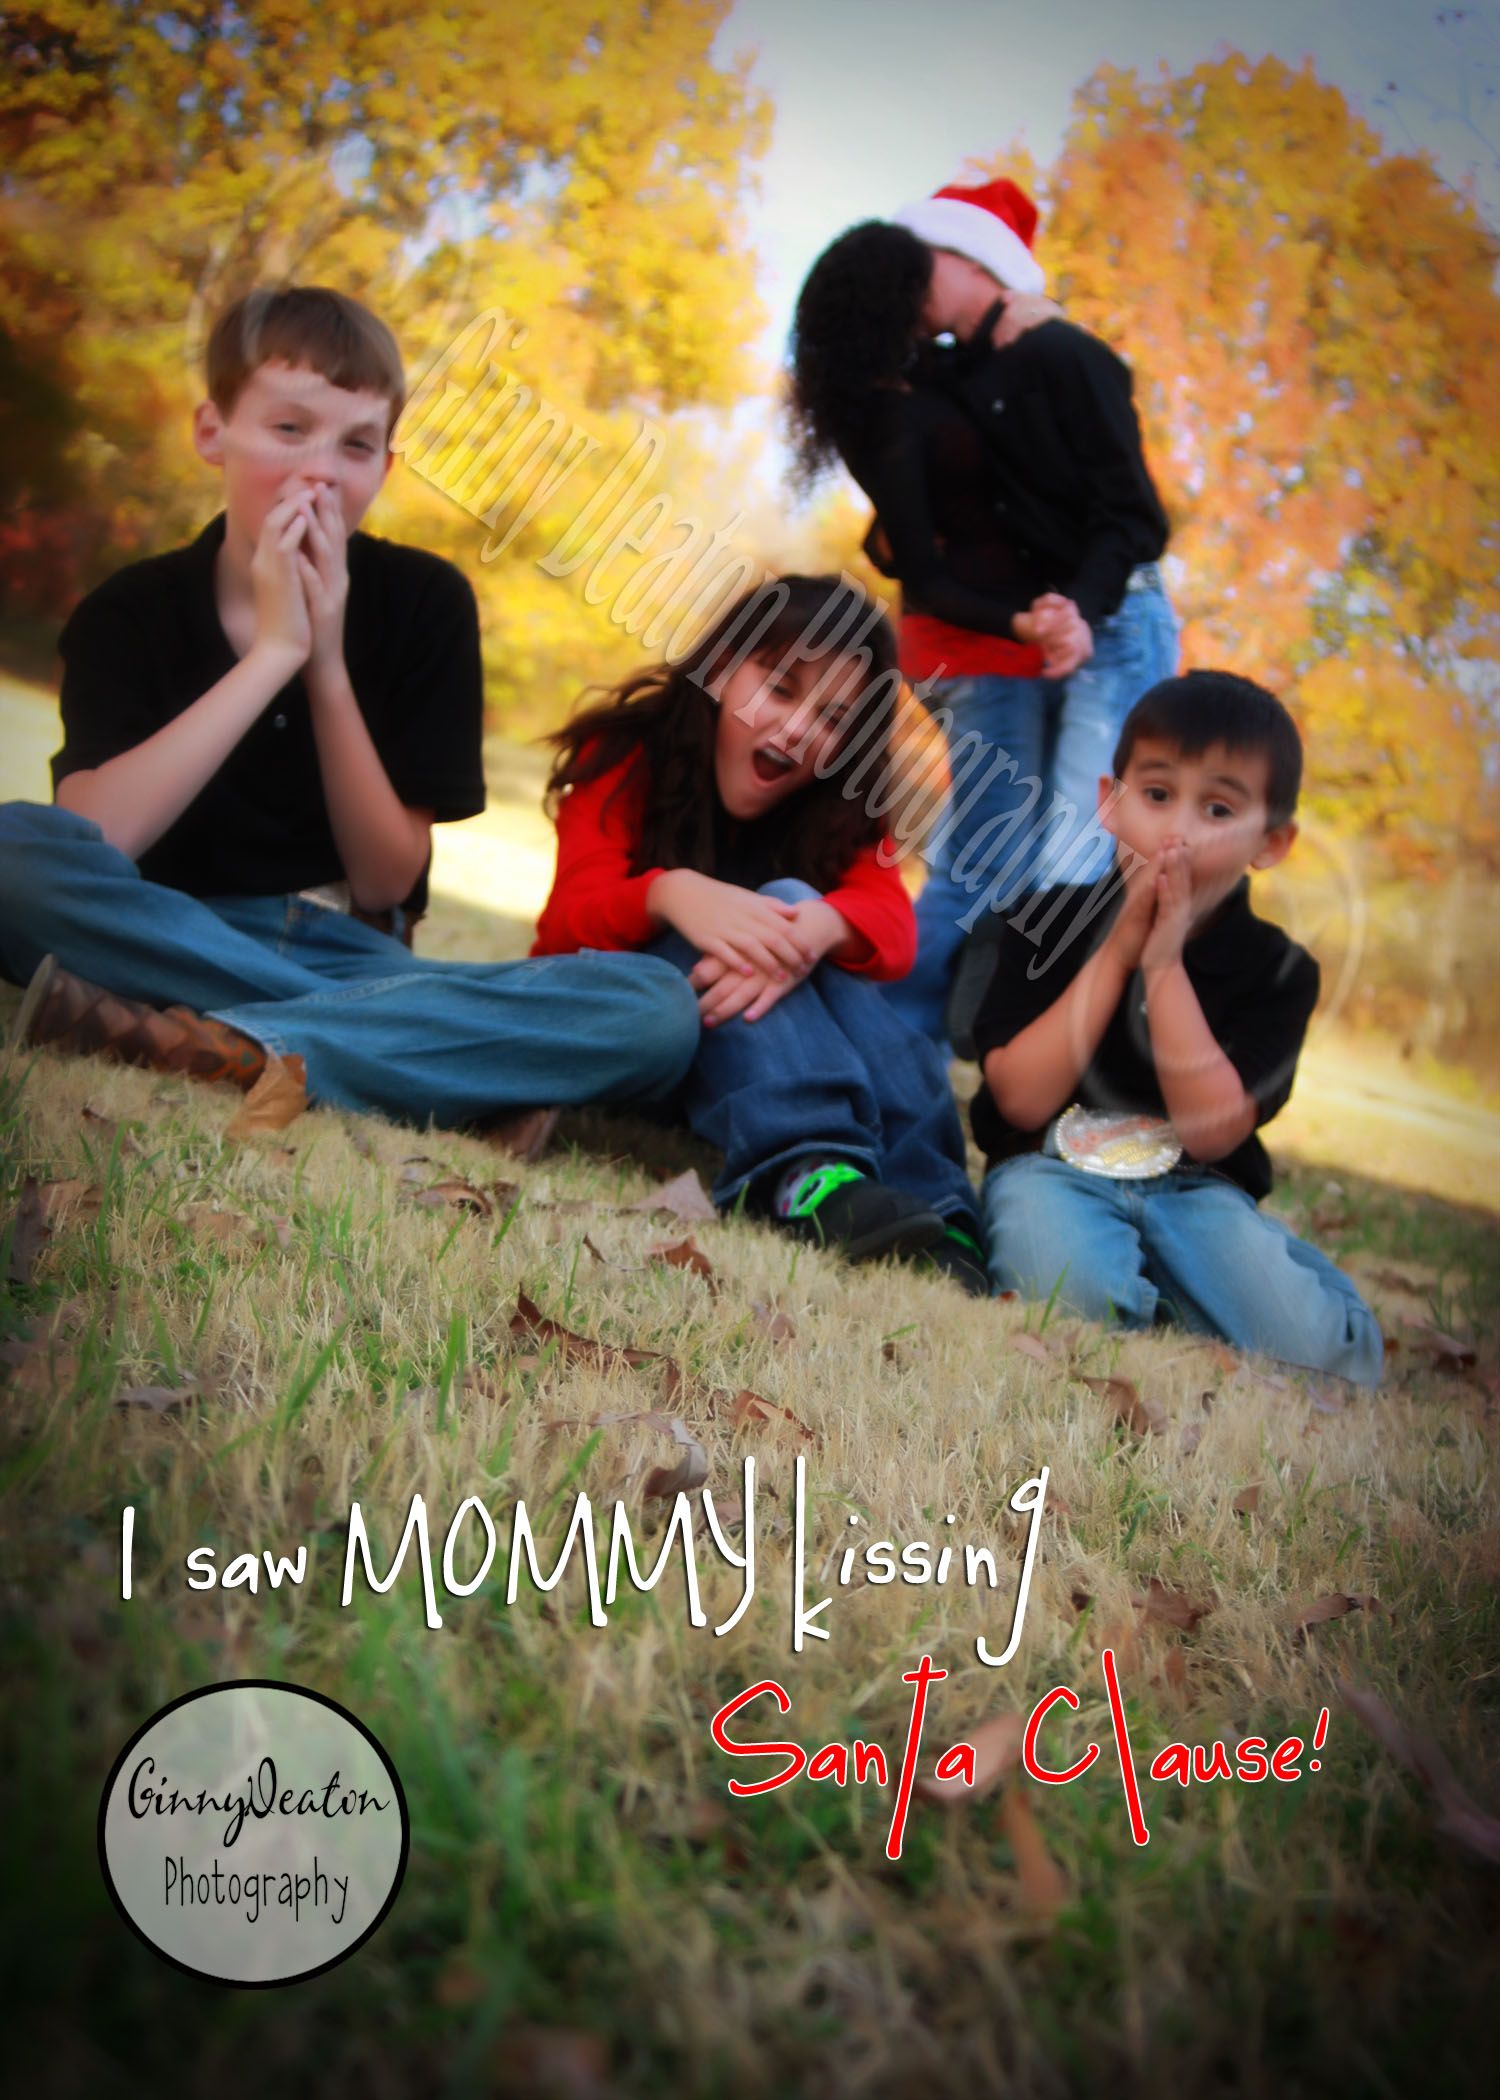 Cute Christmas Family Outdoor Photo: I saw Mommy kissing Santa Claus!